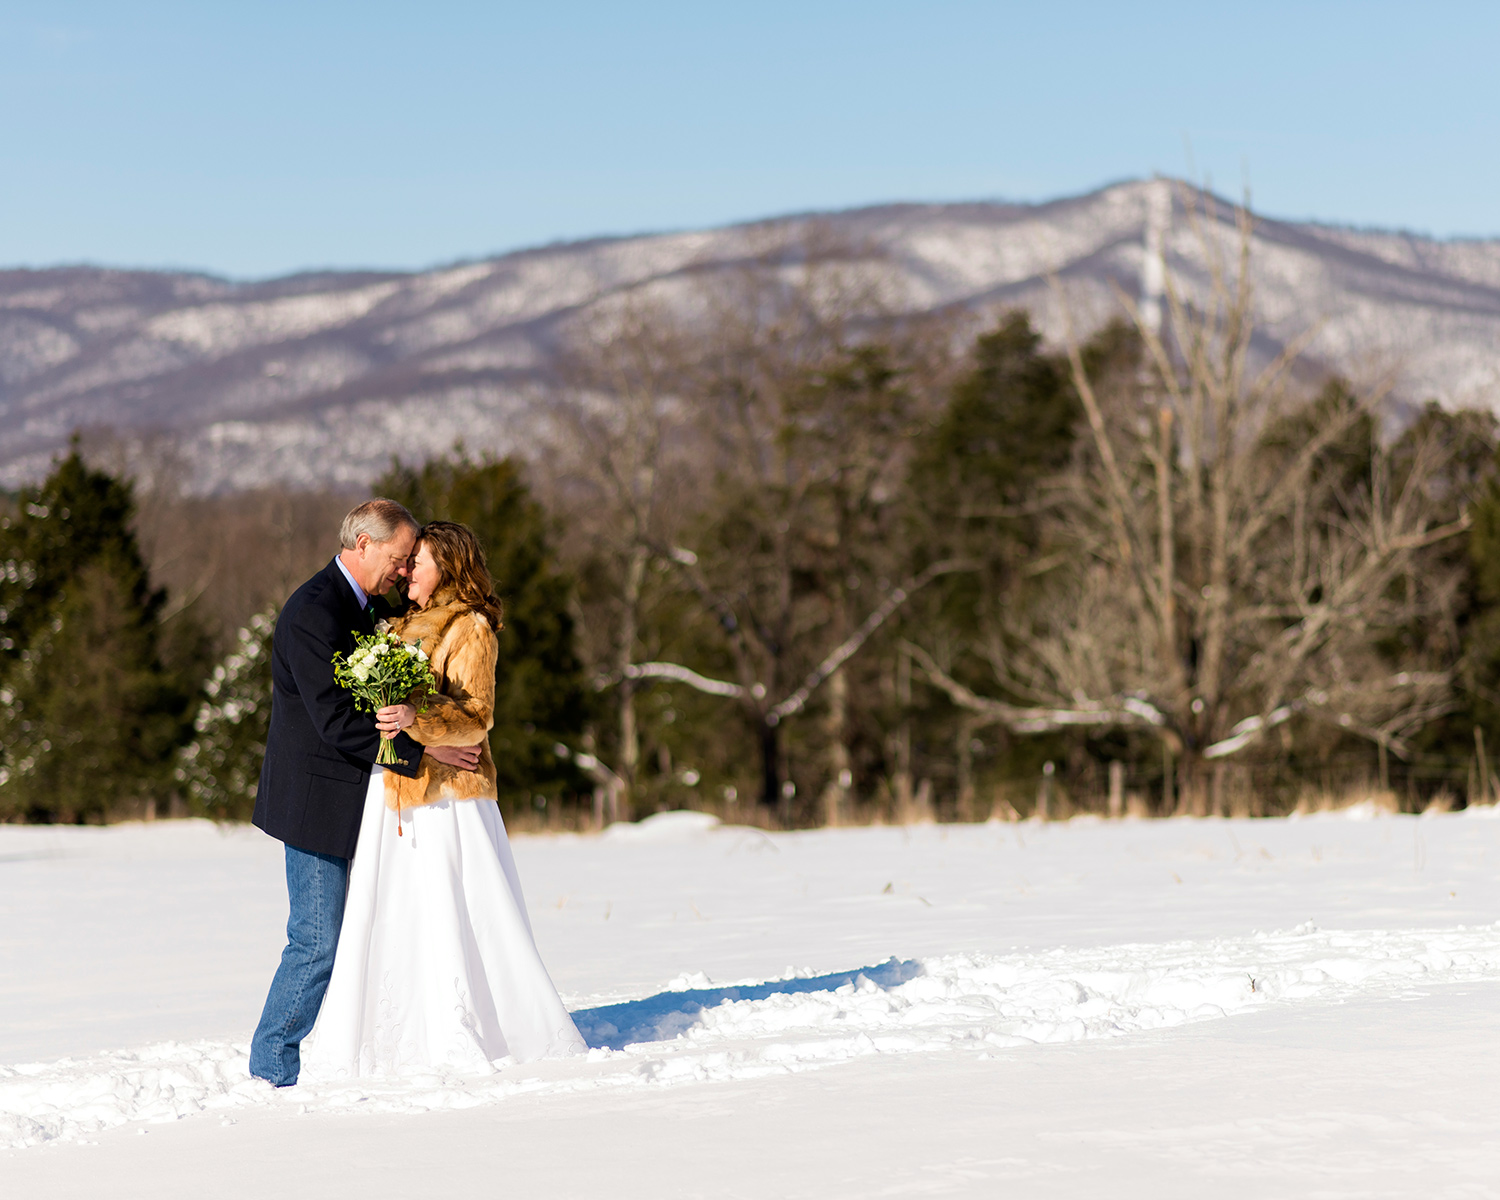 Wedding Gifts For Eloped Couple : The couple decided to have a blizzard elopement so they could get ...